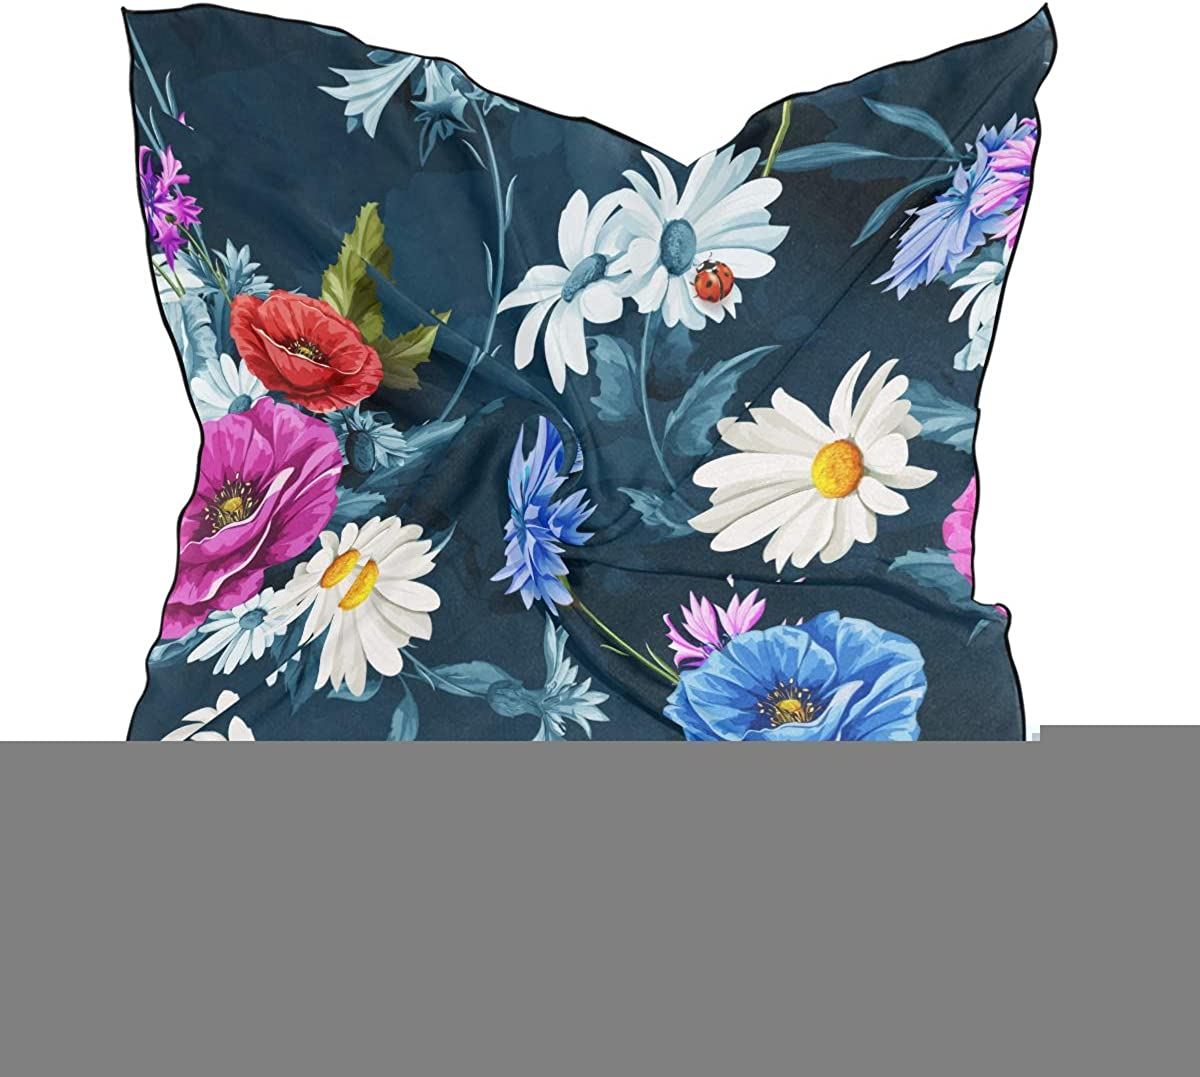 Soft Polyester Silk Scarf Square Fashion Print Colorful Beautiful Flower Poppy Field Ladies Scarf Square Fashion Scarf Womens Neckerchief Multiple Ways Of Wearing Daily Decor